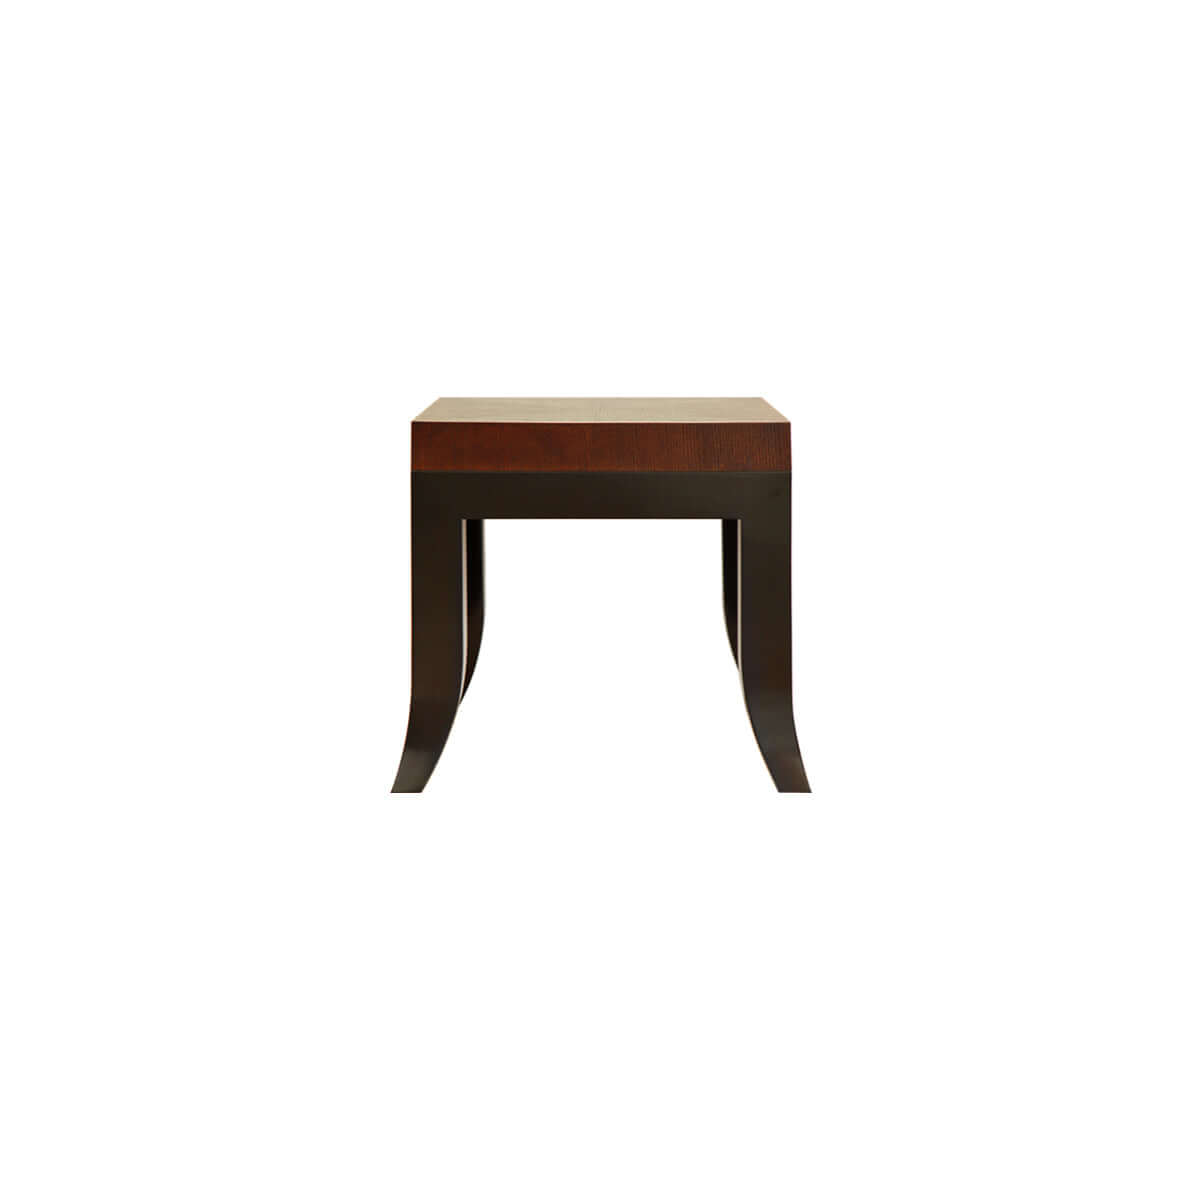 classic yet stylish presidio side table